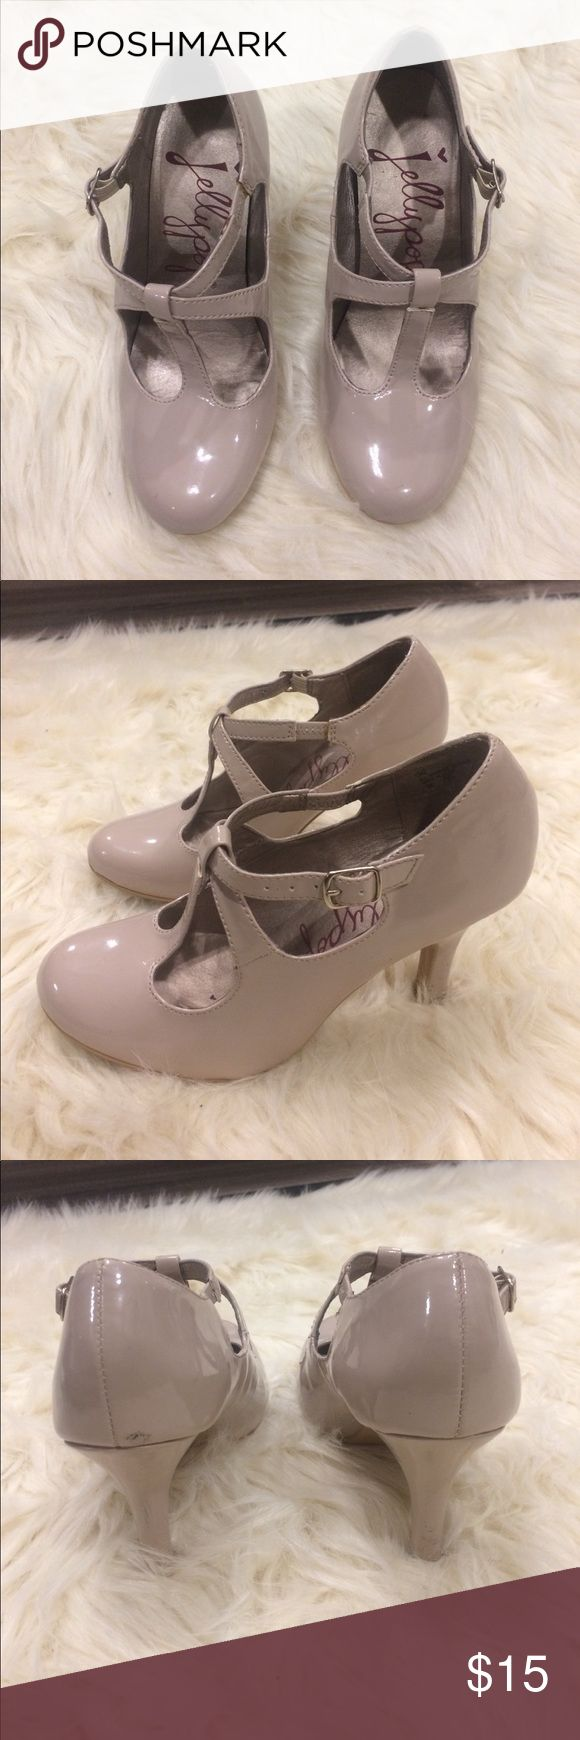 Kelly pop women heel size 6 Kelly pop women shoe/heel size 6 only worn a few times good condition light pink very light look at pictures closely jellypop Shoes Heels